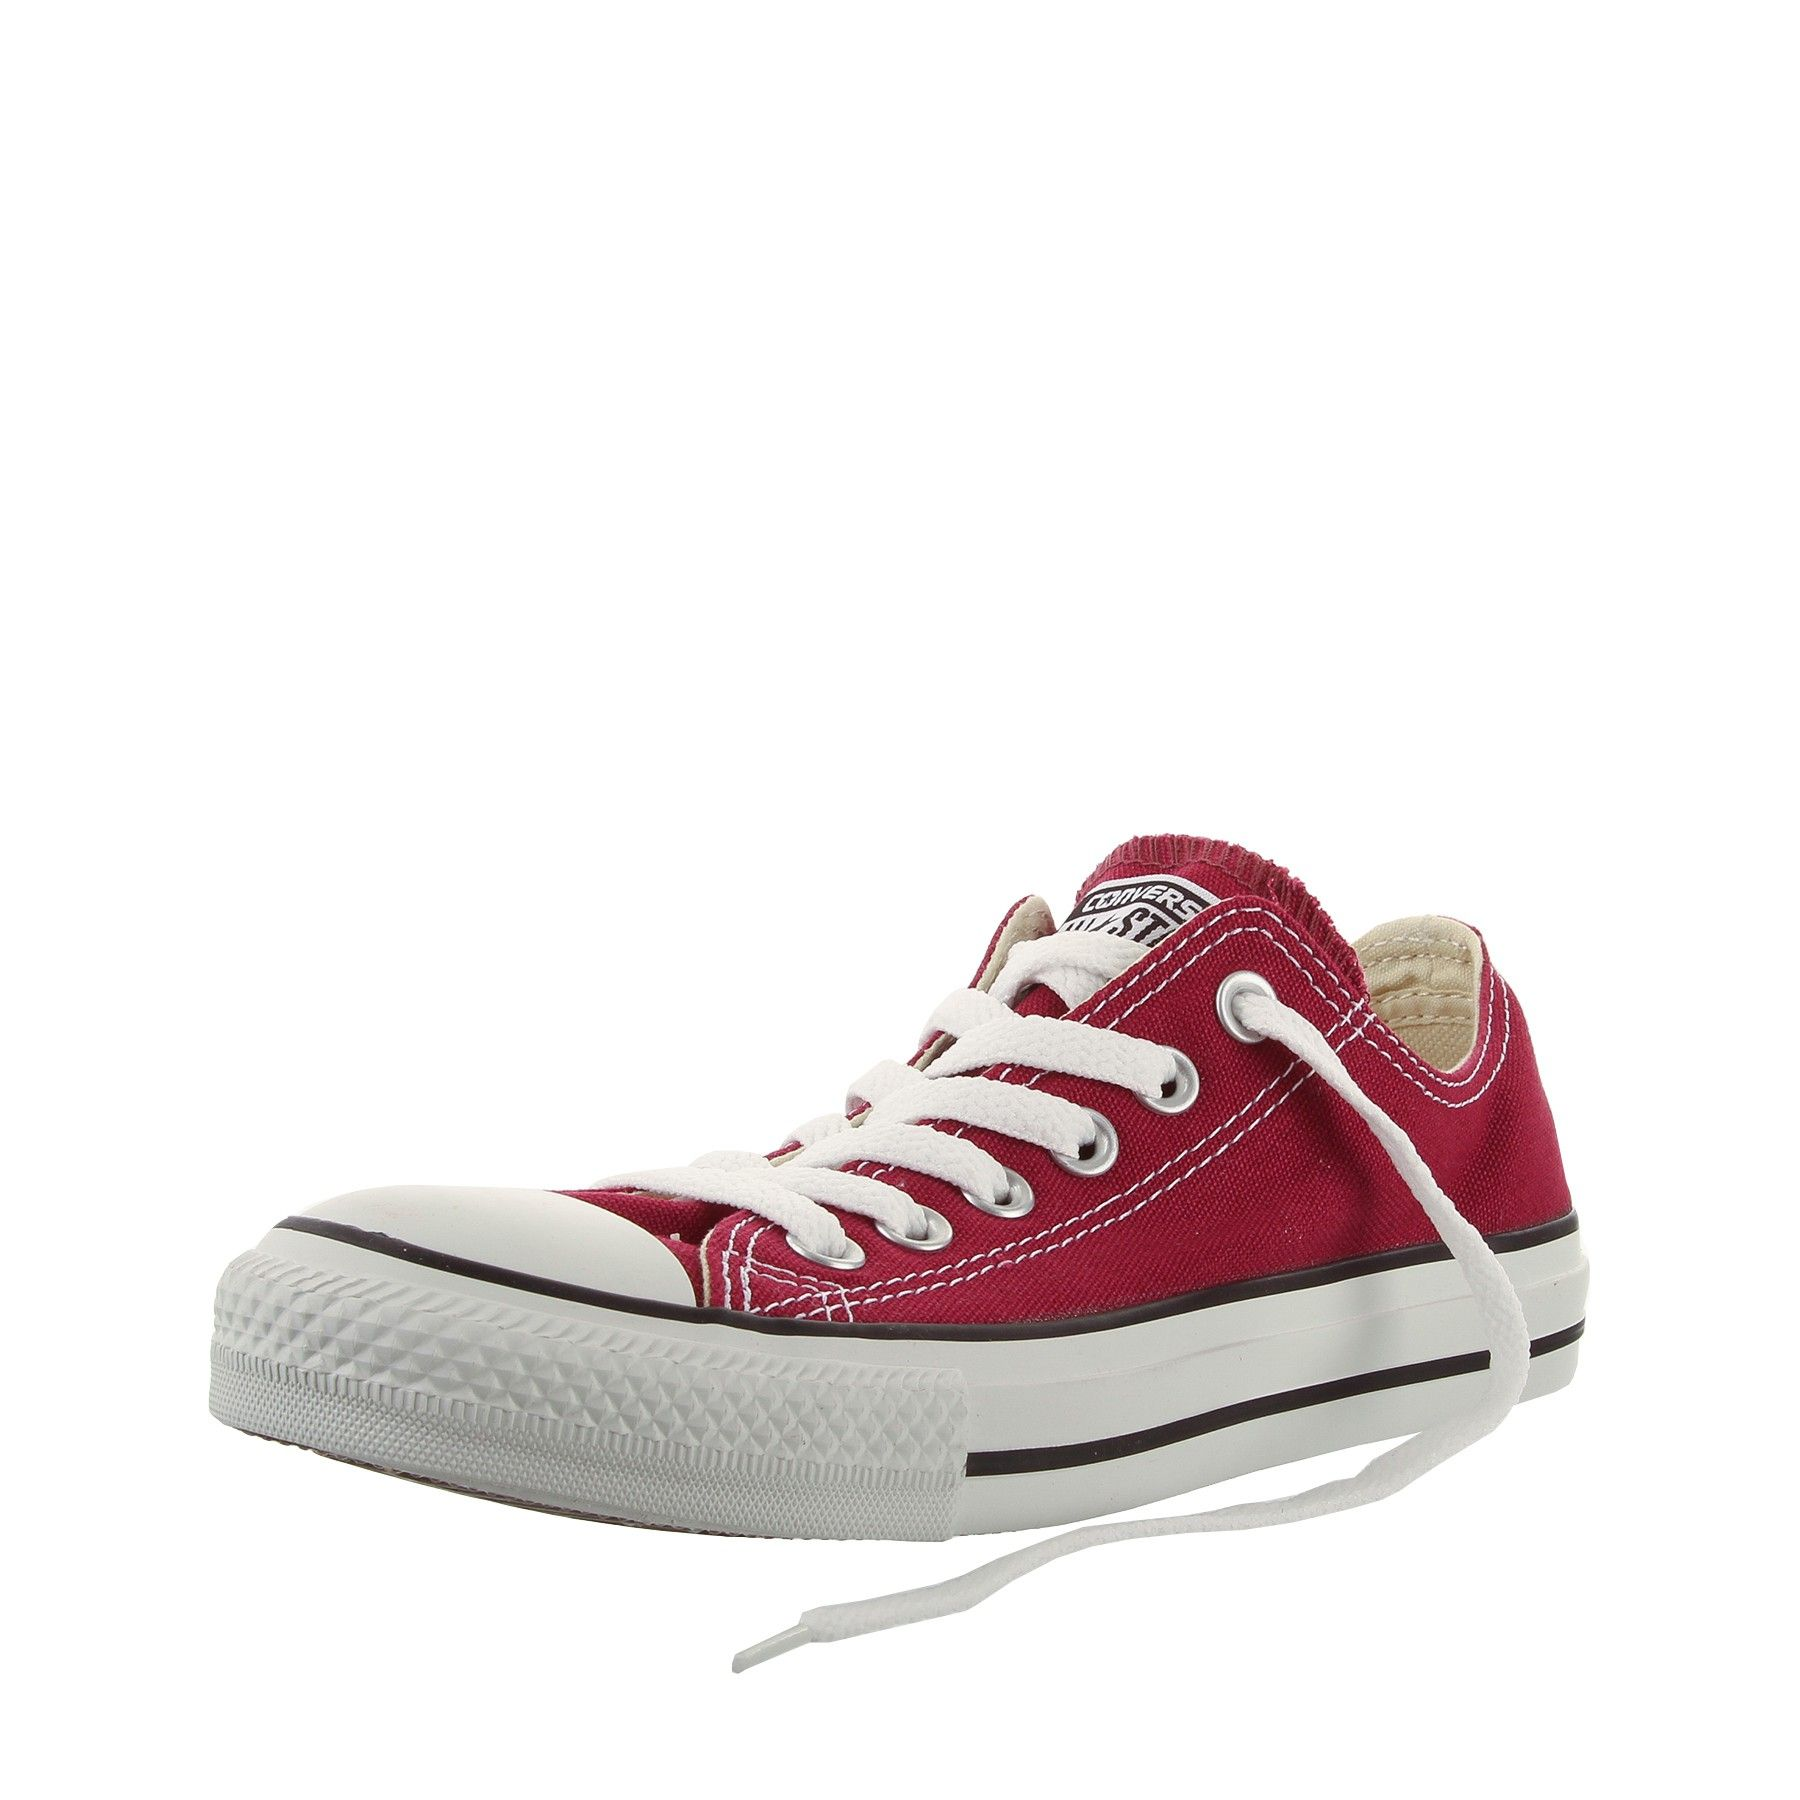 NUOVO All Star Converse Chucks Low Sneaker Ox can Maroon m9691 High Top Sschuhe